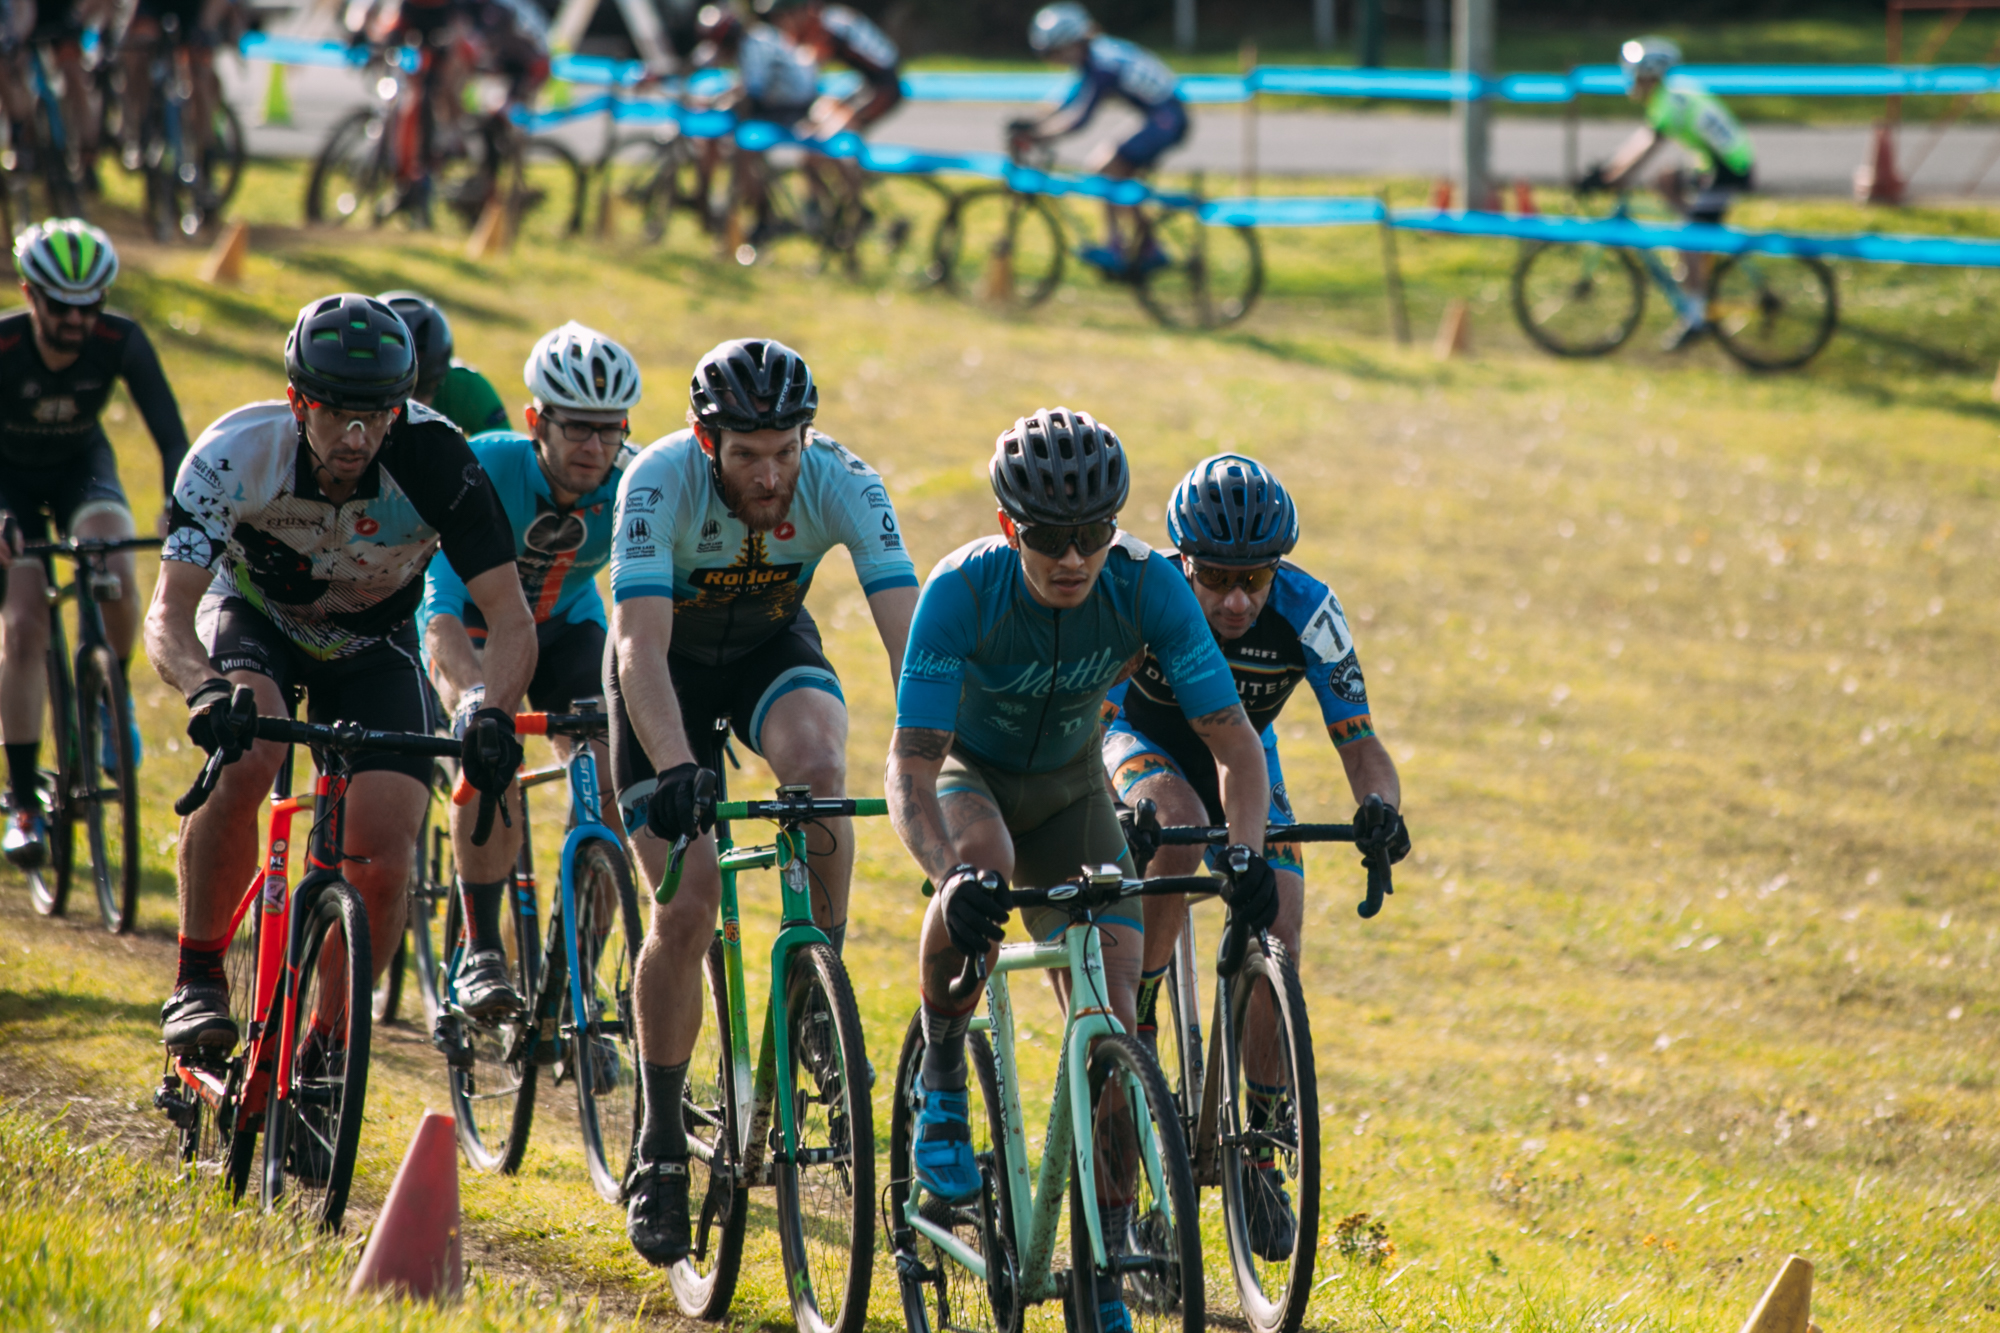 Cyclocross18_CCCX_RainierHS-25-mettlecycling.jpg